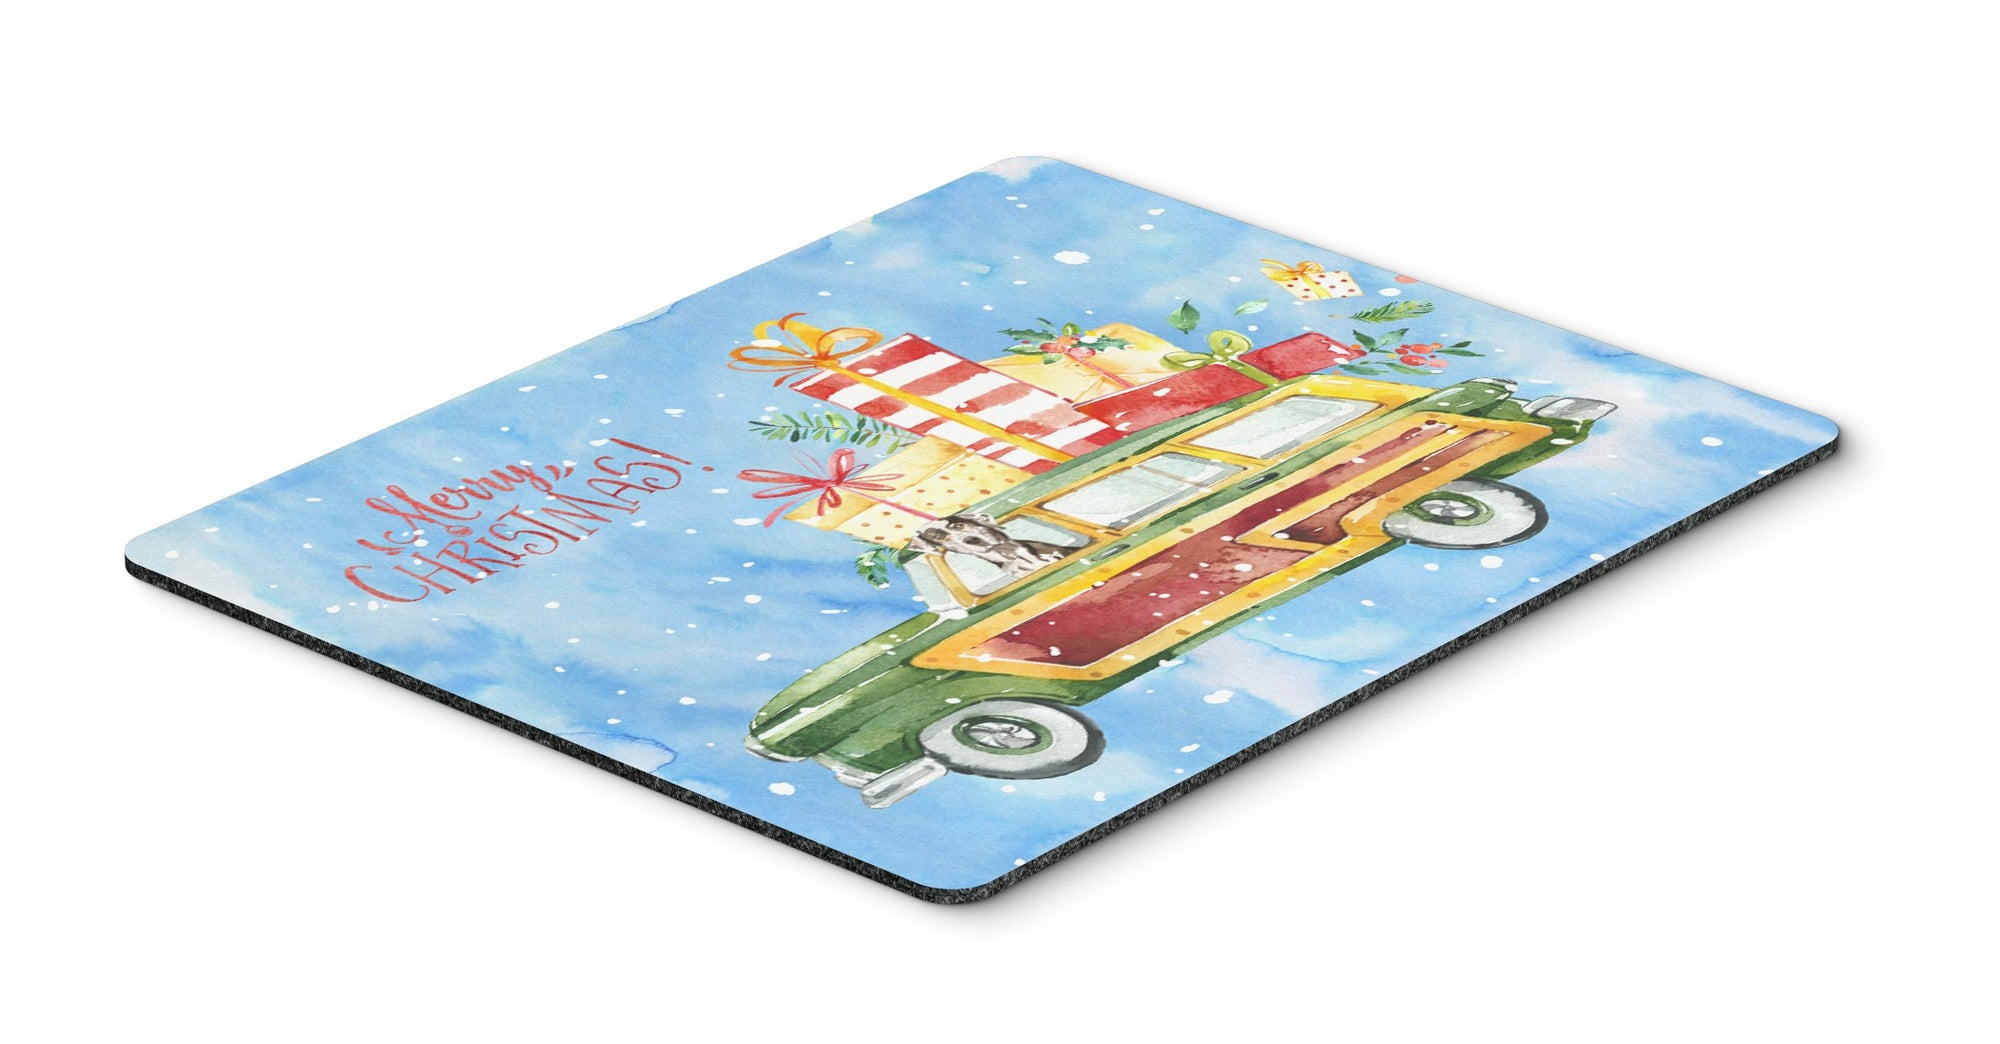 Merry Christmas Catahoula Leopard Dog Mouse Pad, Hot Pad or Trivet CK2402MP by Caroline's Treasures